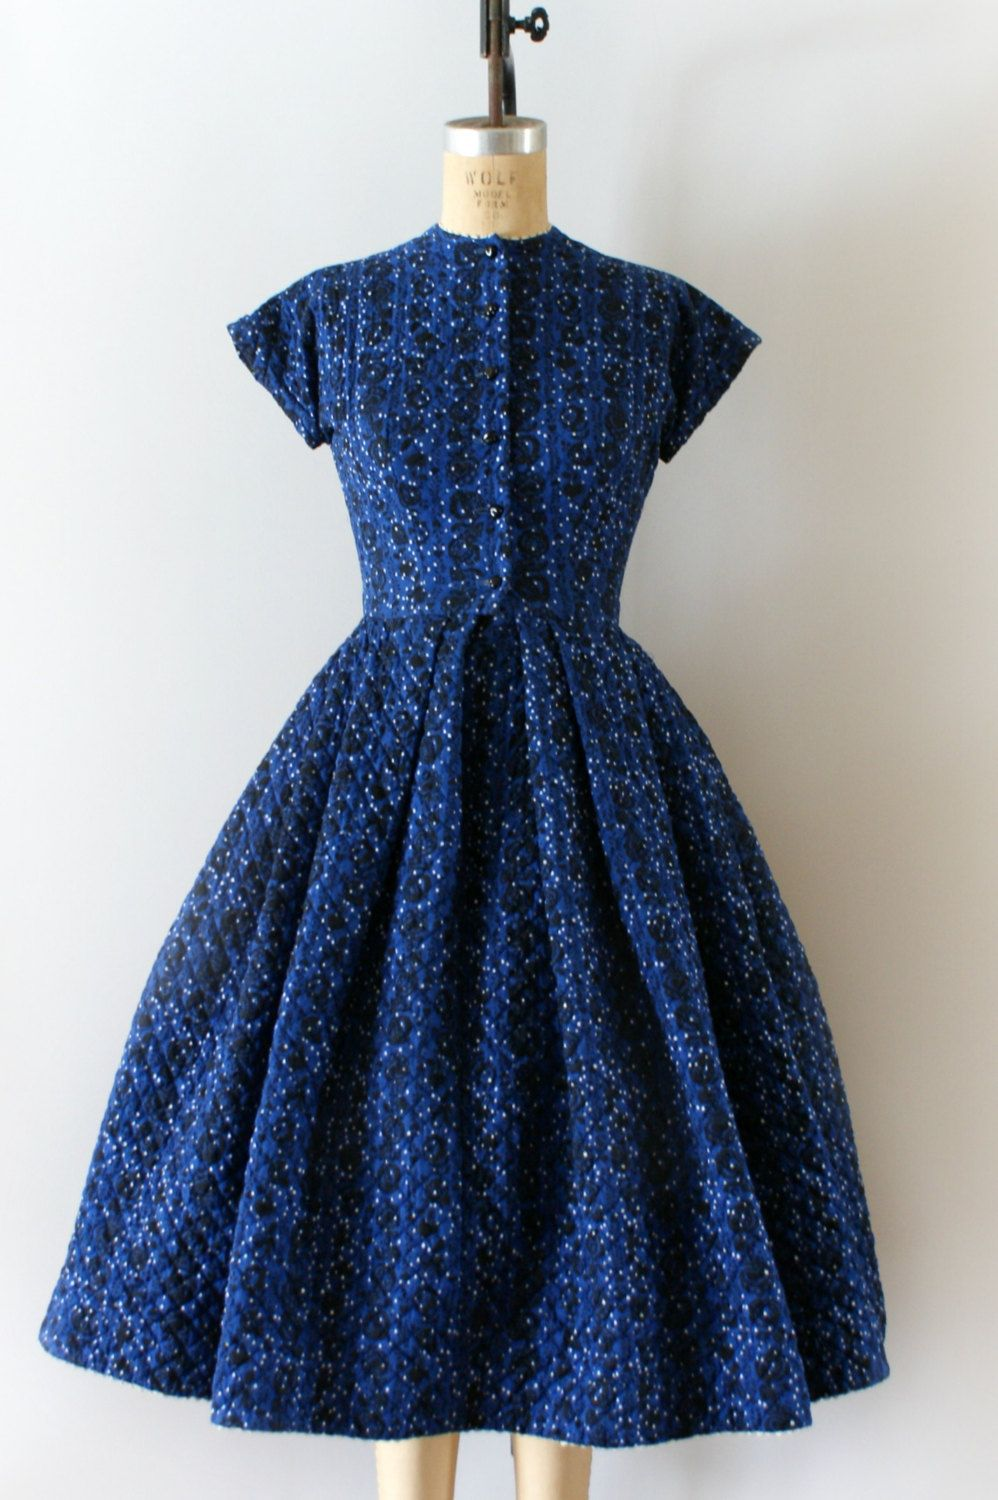 Vintage 1950s Lanz dress, blue floral quilted cotton body, fit and flare design features a fitted bodice, button front design, short capped sleeves